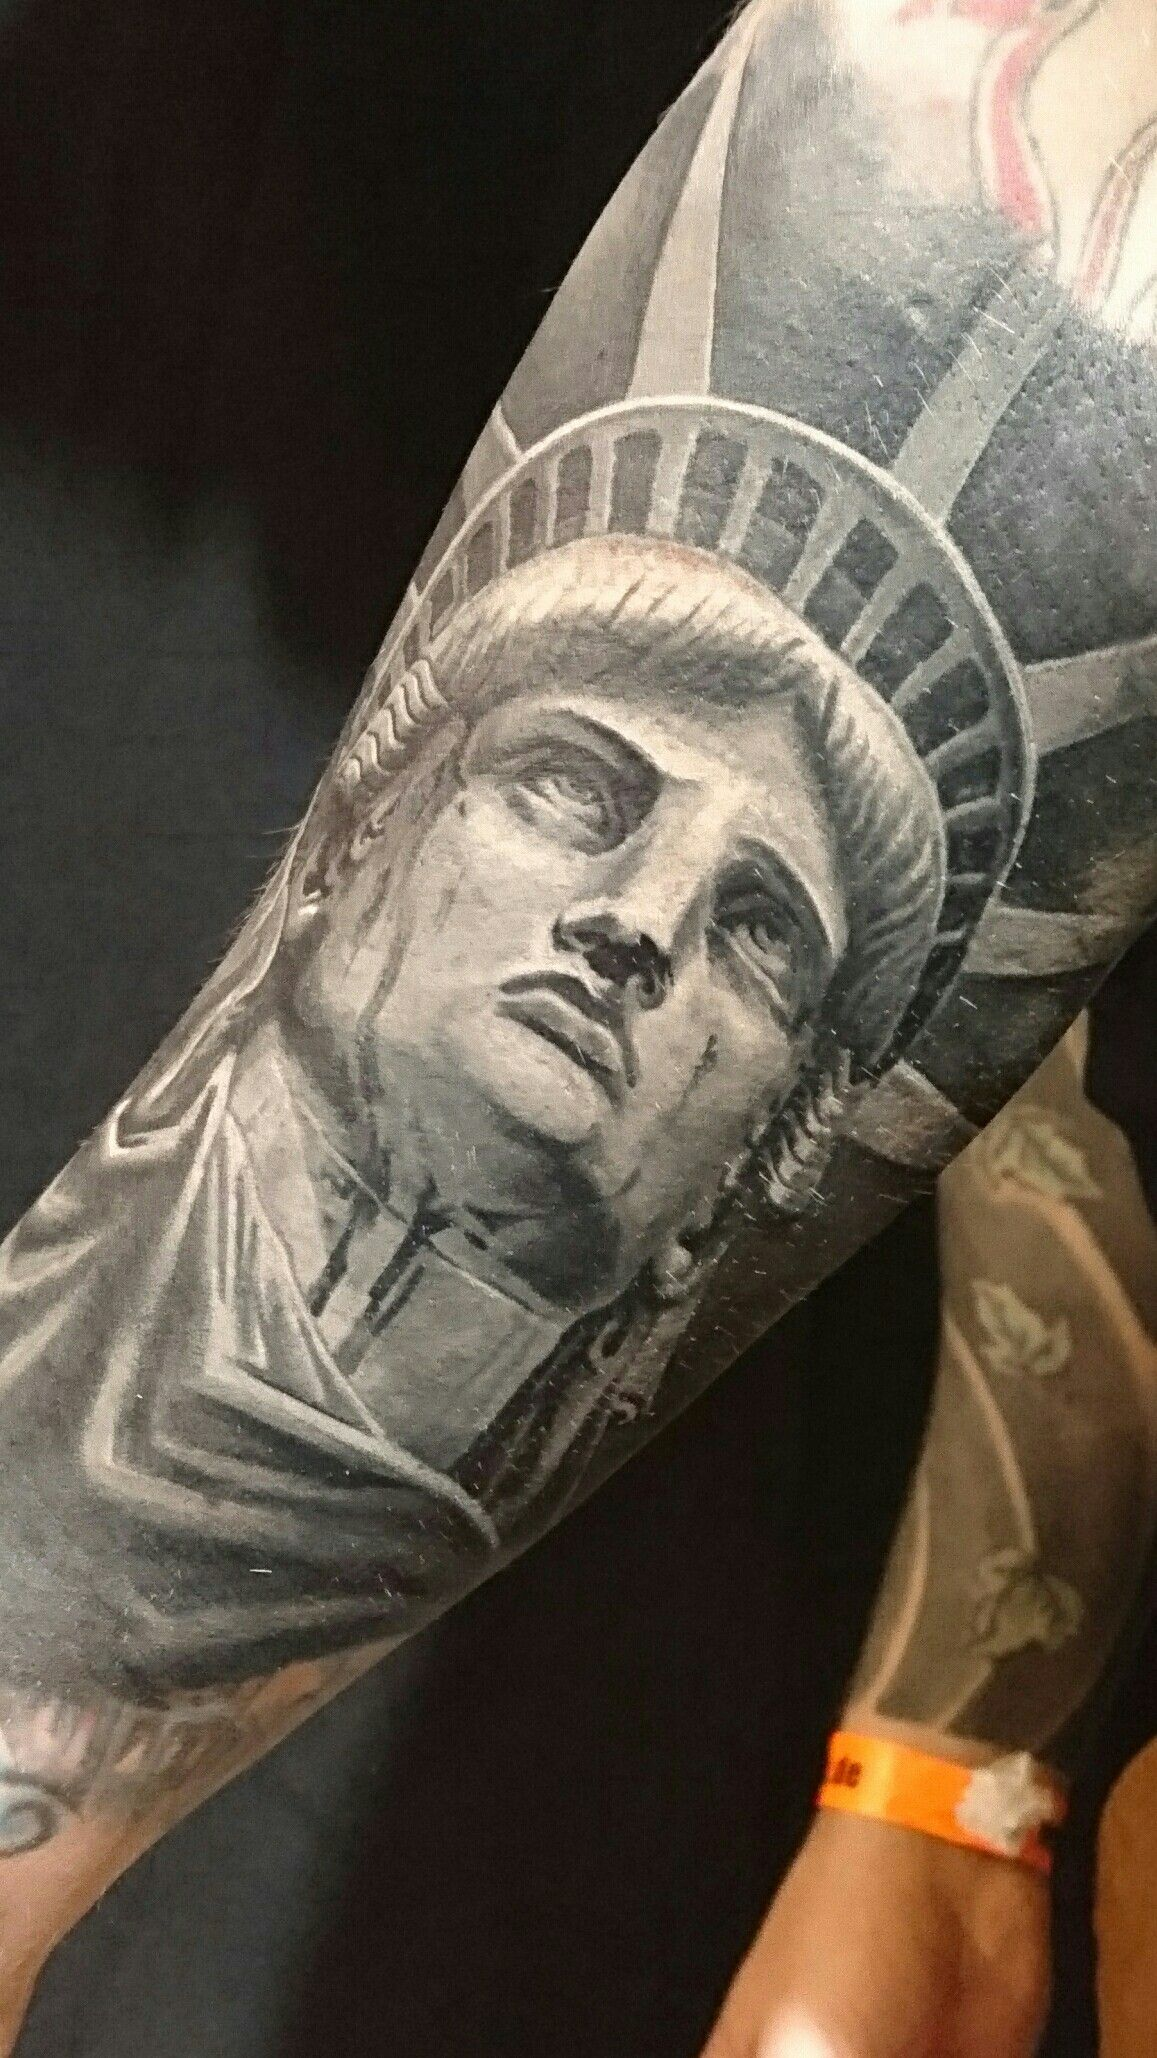 statue of liberty tattoo beautiful tattoos faces portrait pinterest liberty tattoo and. Black Bedroom Furniture Sets. Home Design Ideas